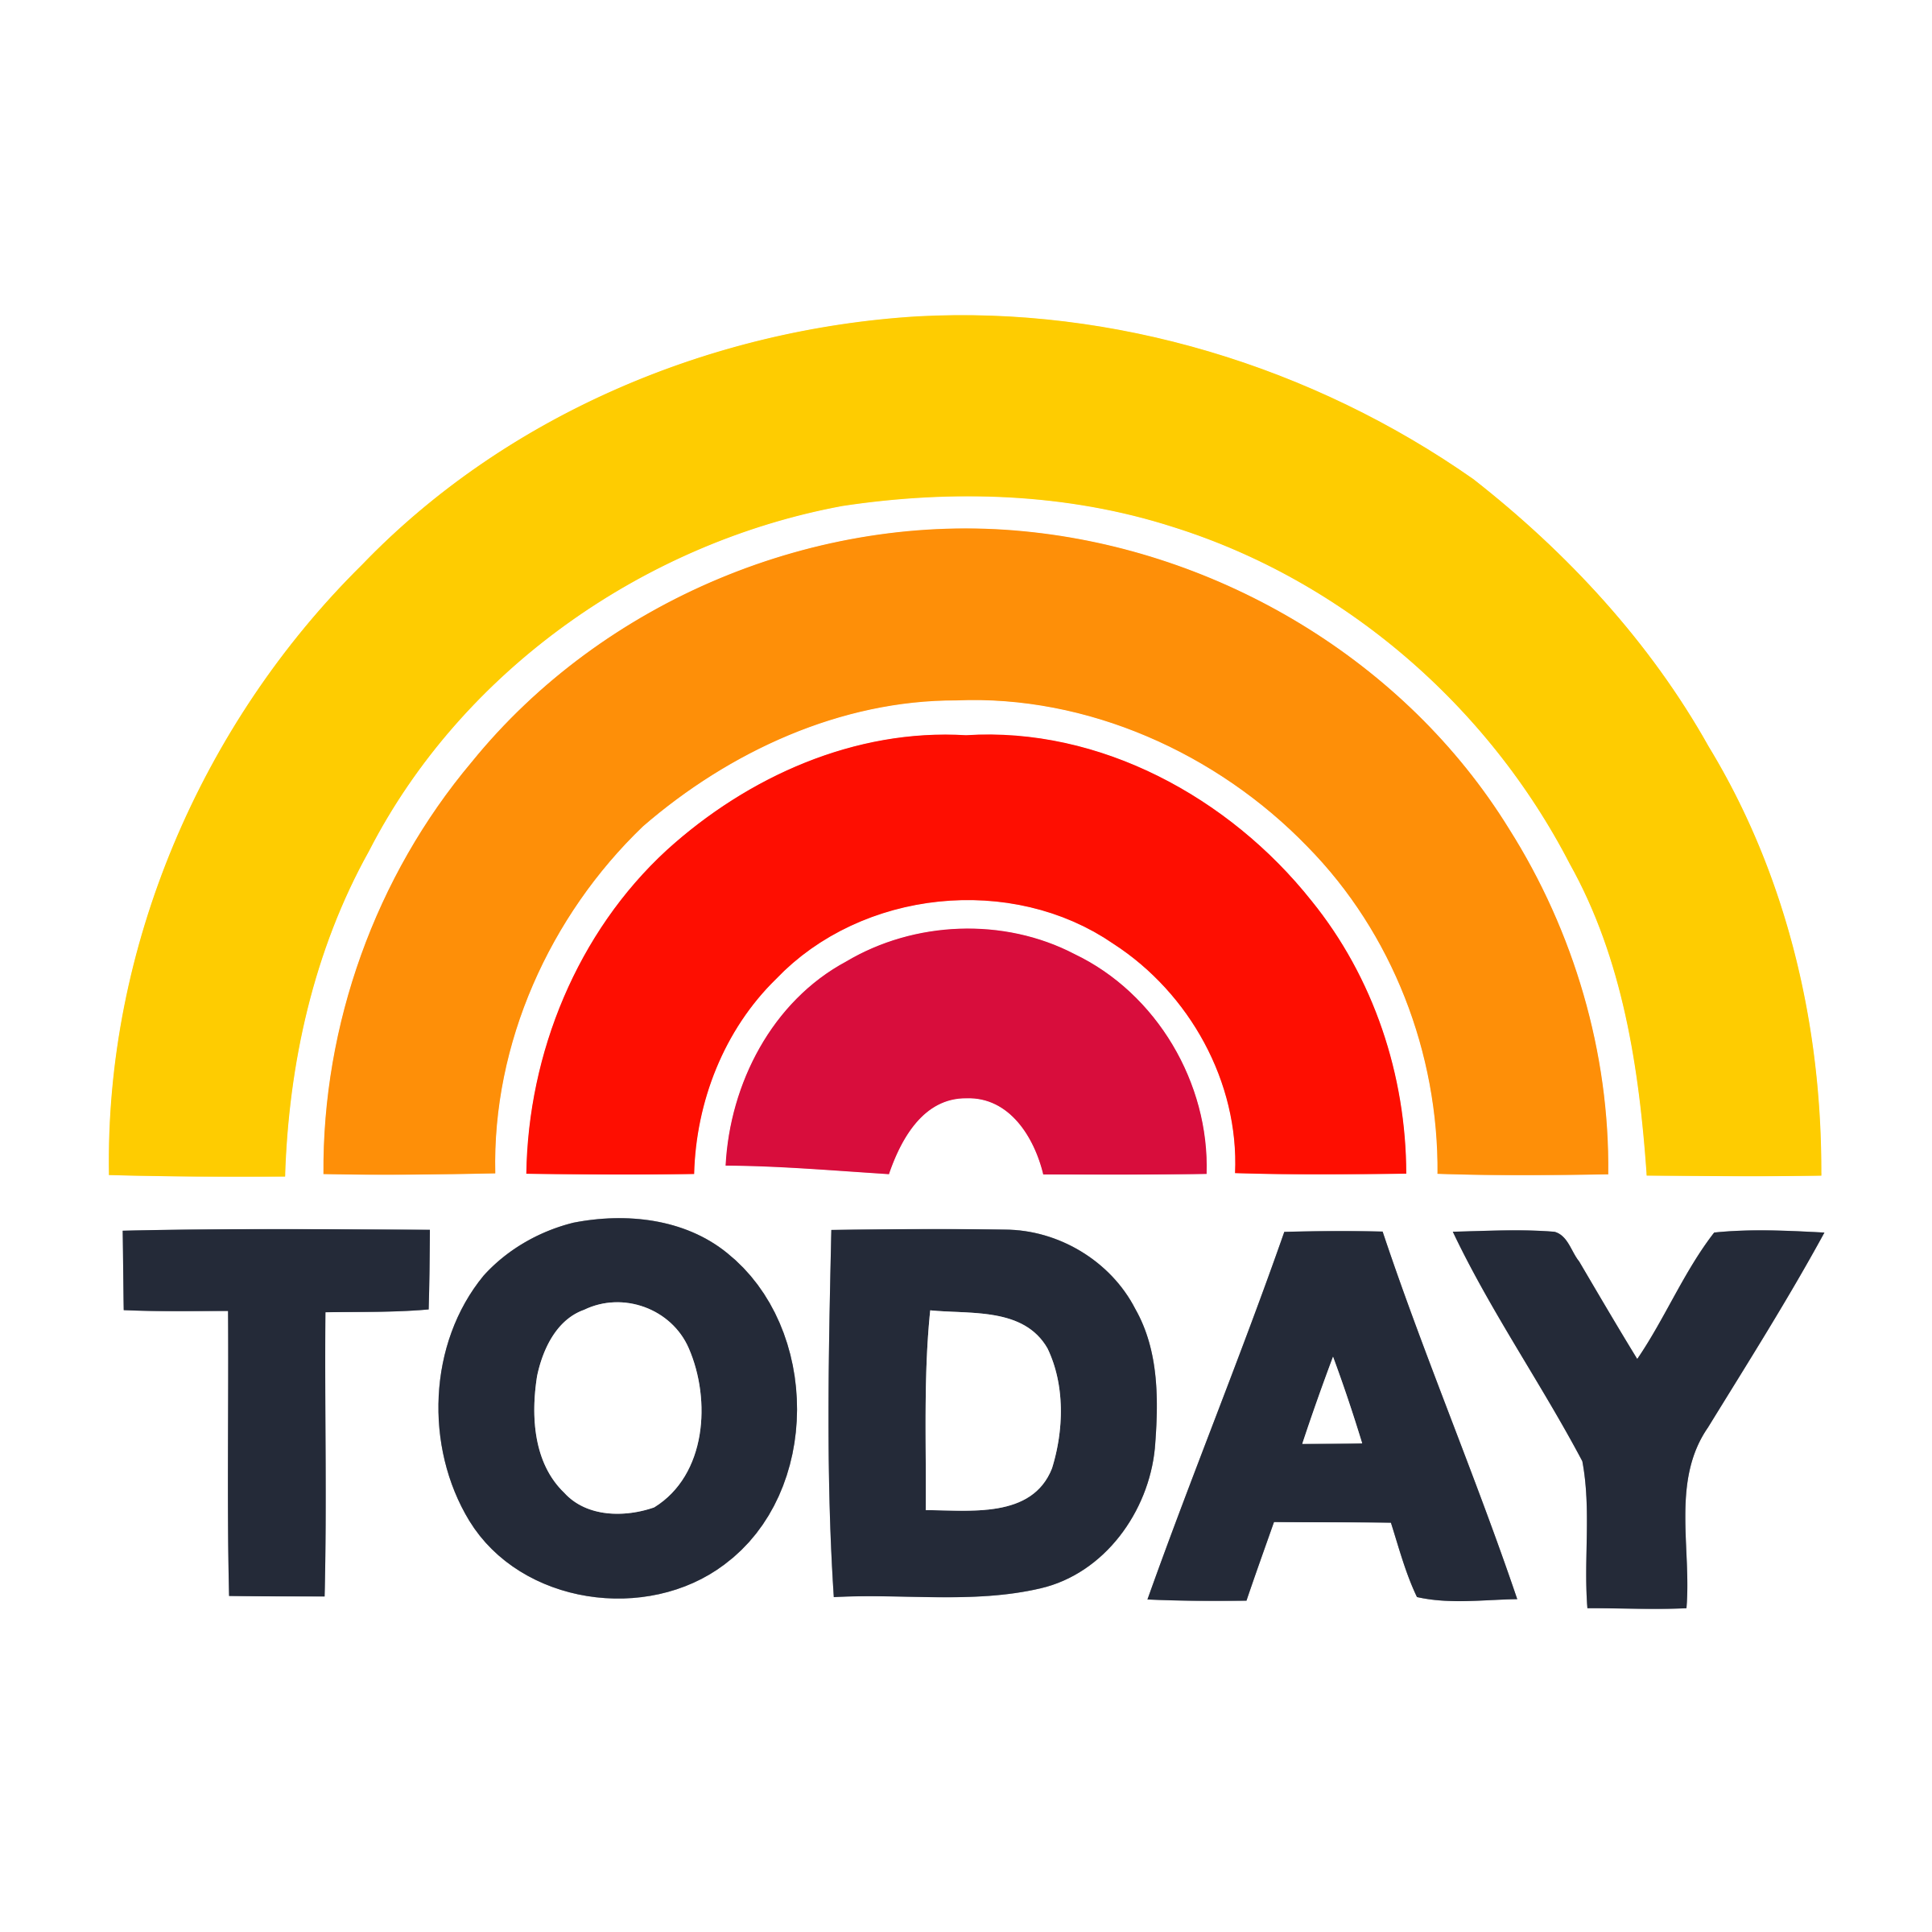 The today show Logos